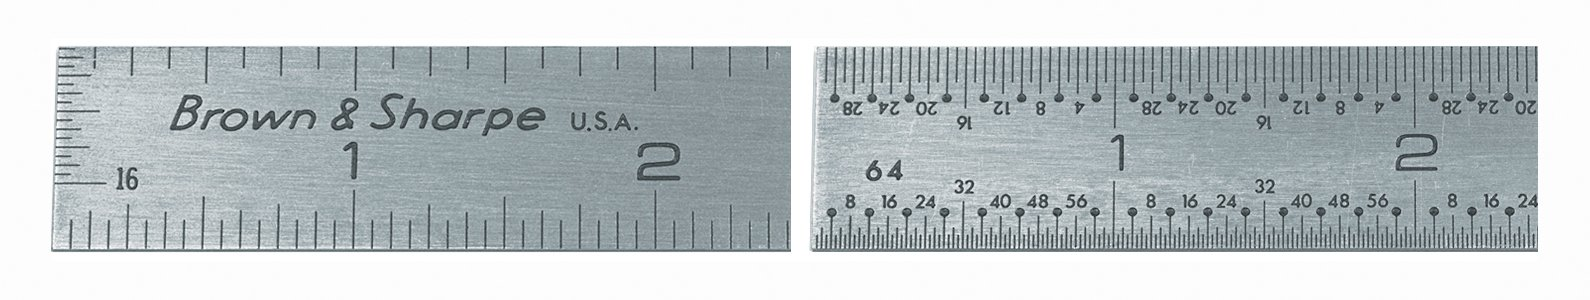 Brown & Sharpe 599-314-604 Stainless Steel Stainless Rule, 6'' Length